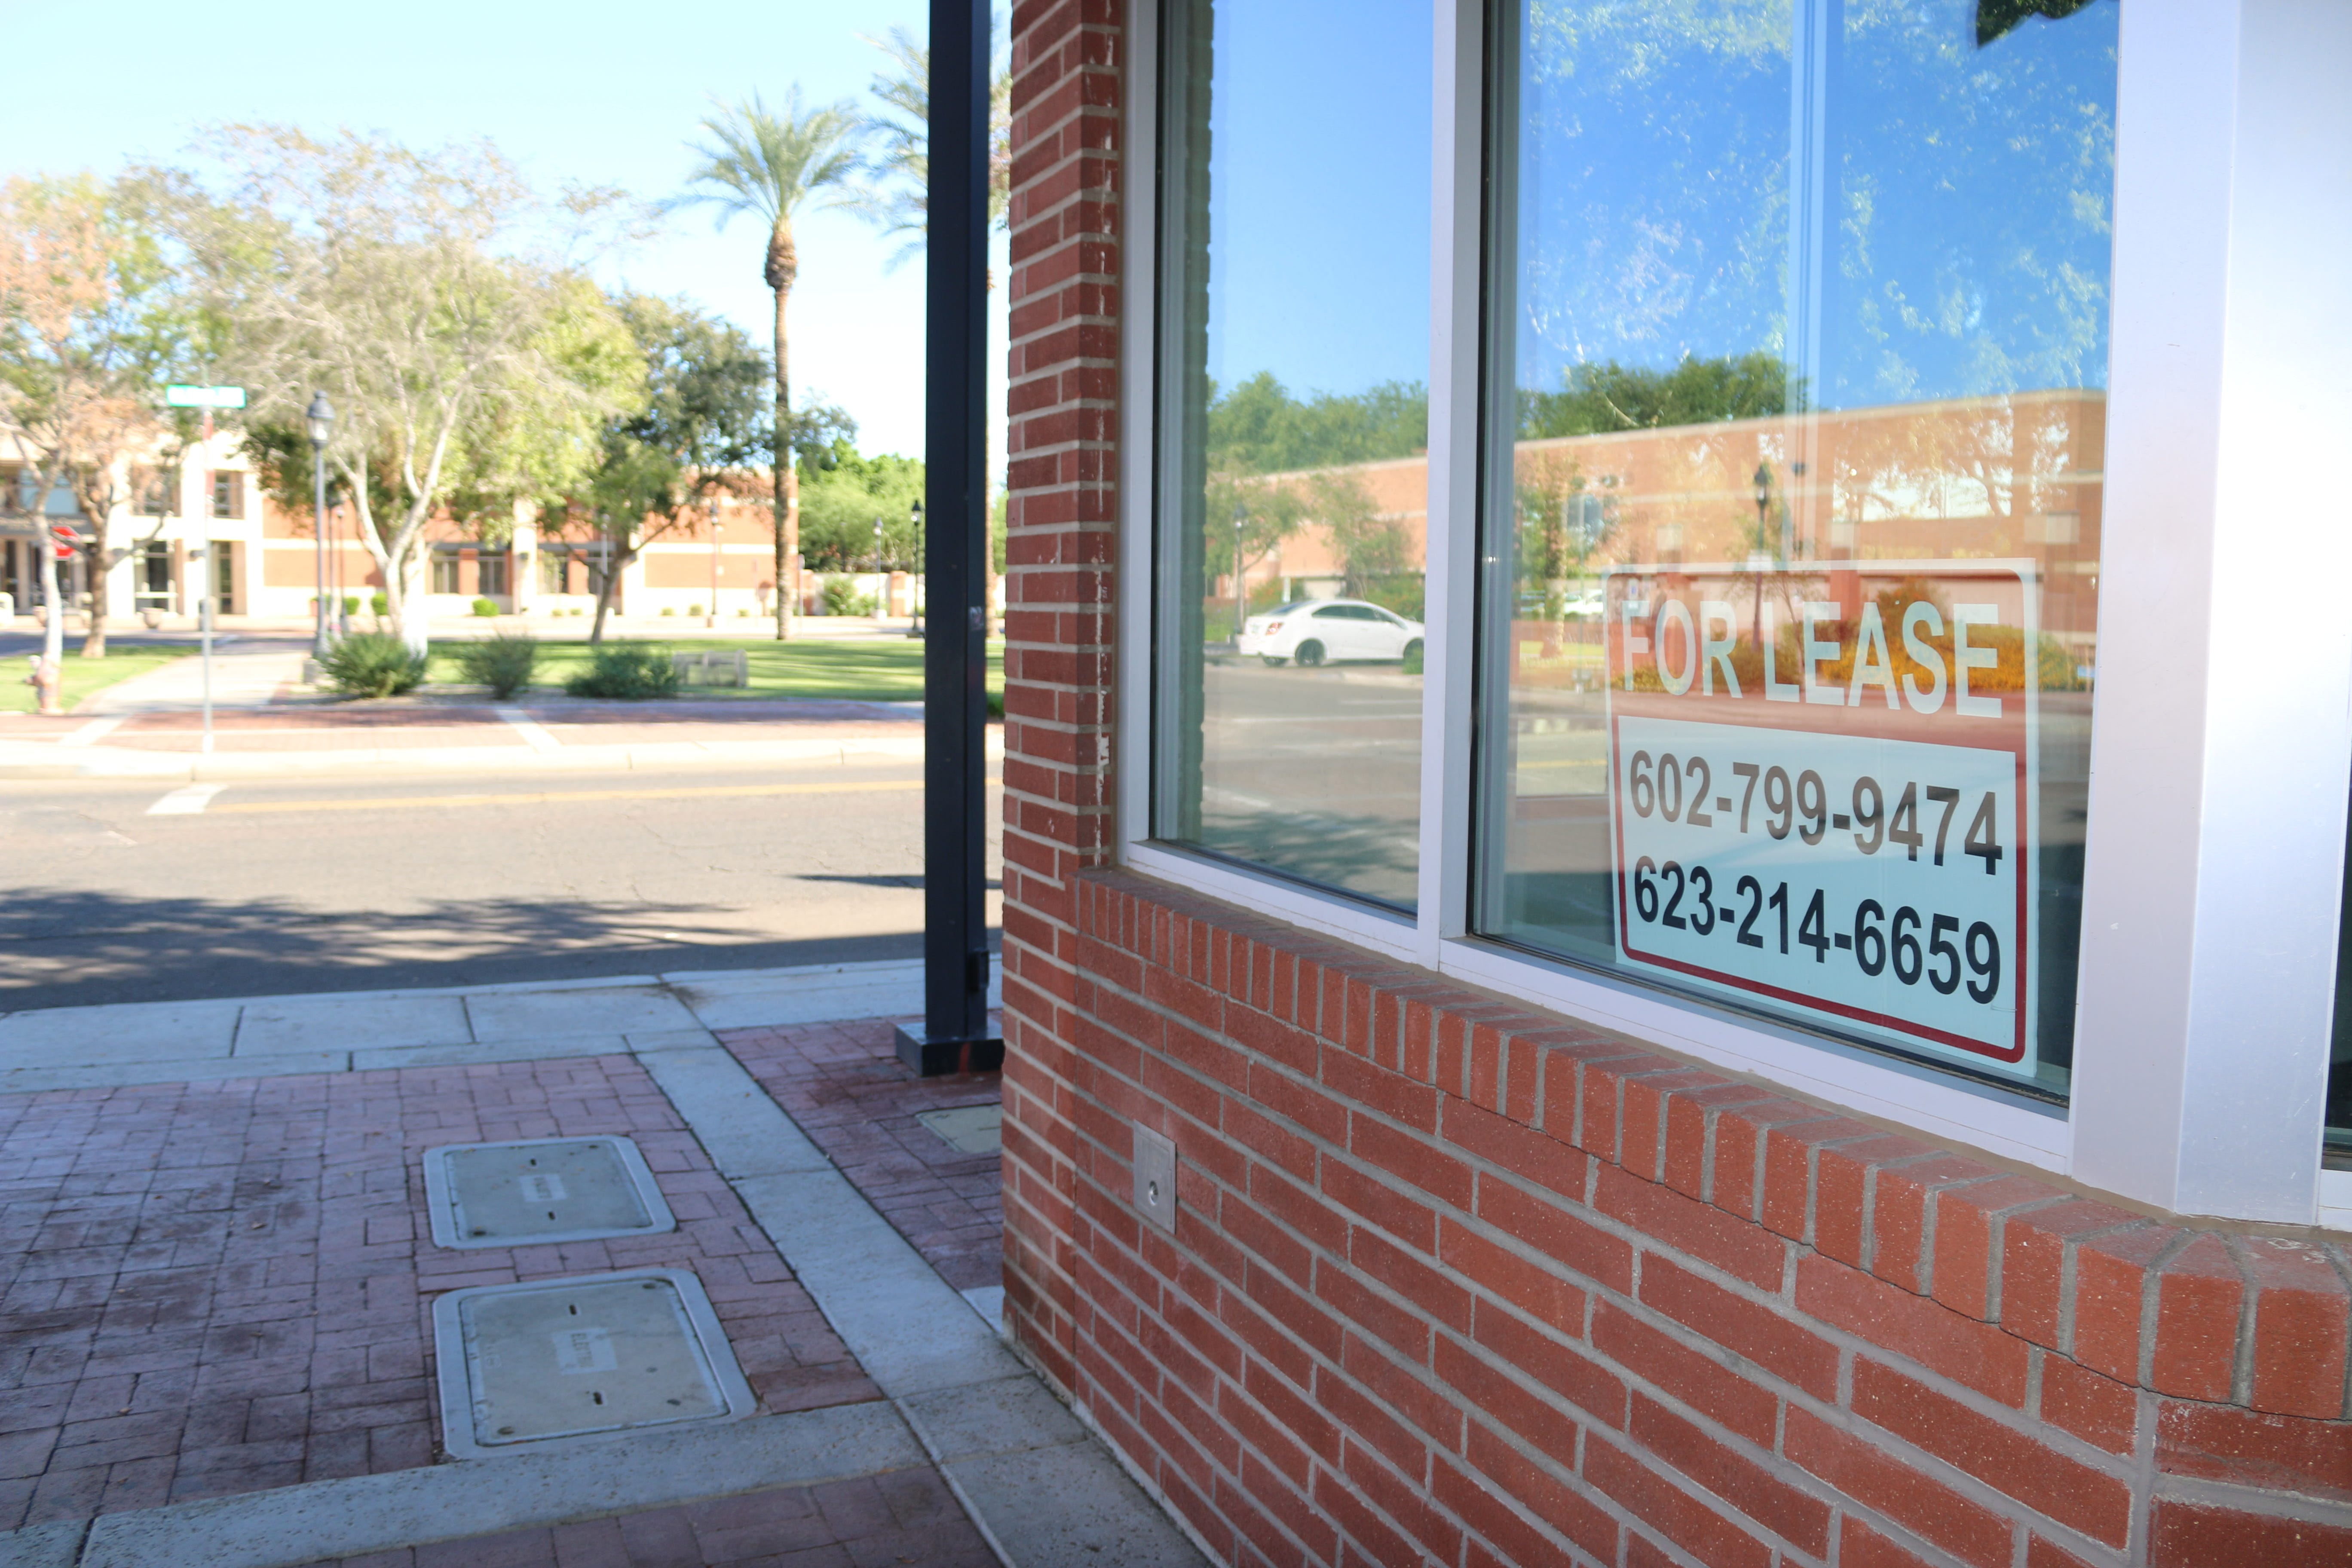 Glendale precise purchased a constructing in its downtown for $25,000. Became it a backdoor deal?